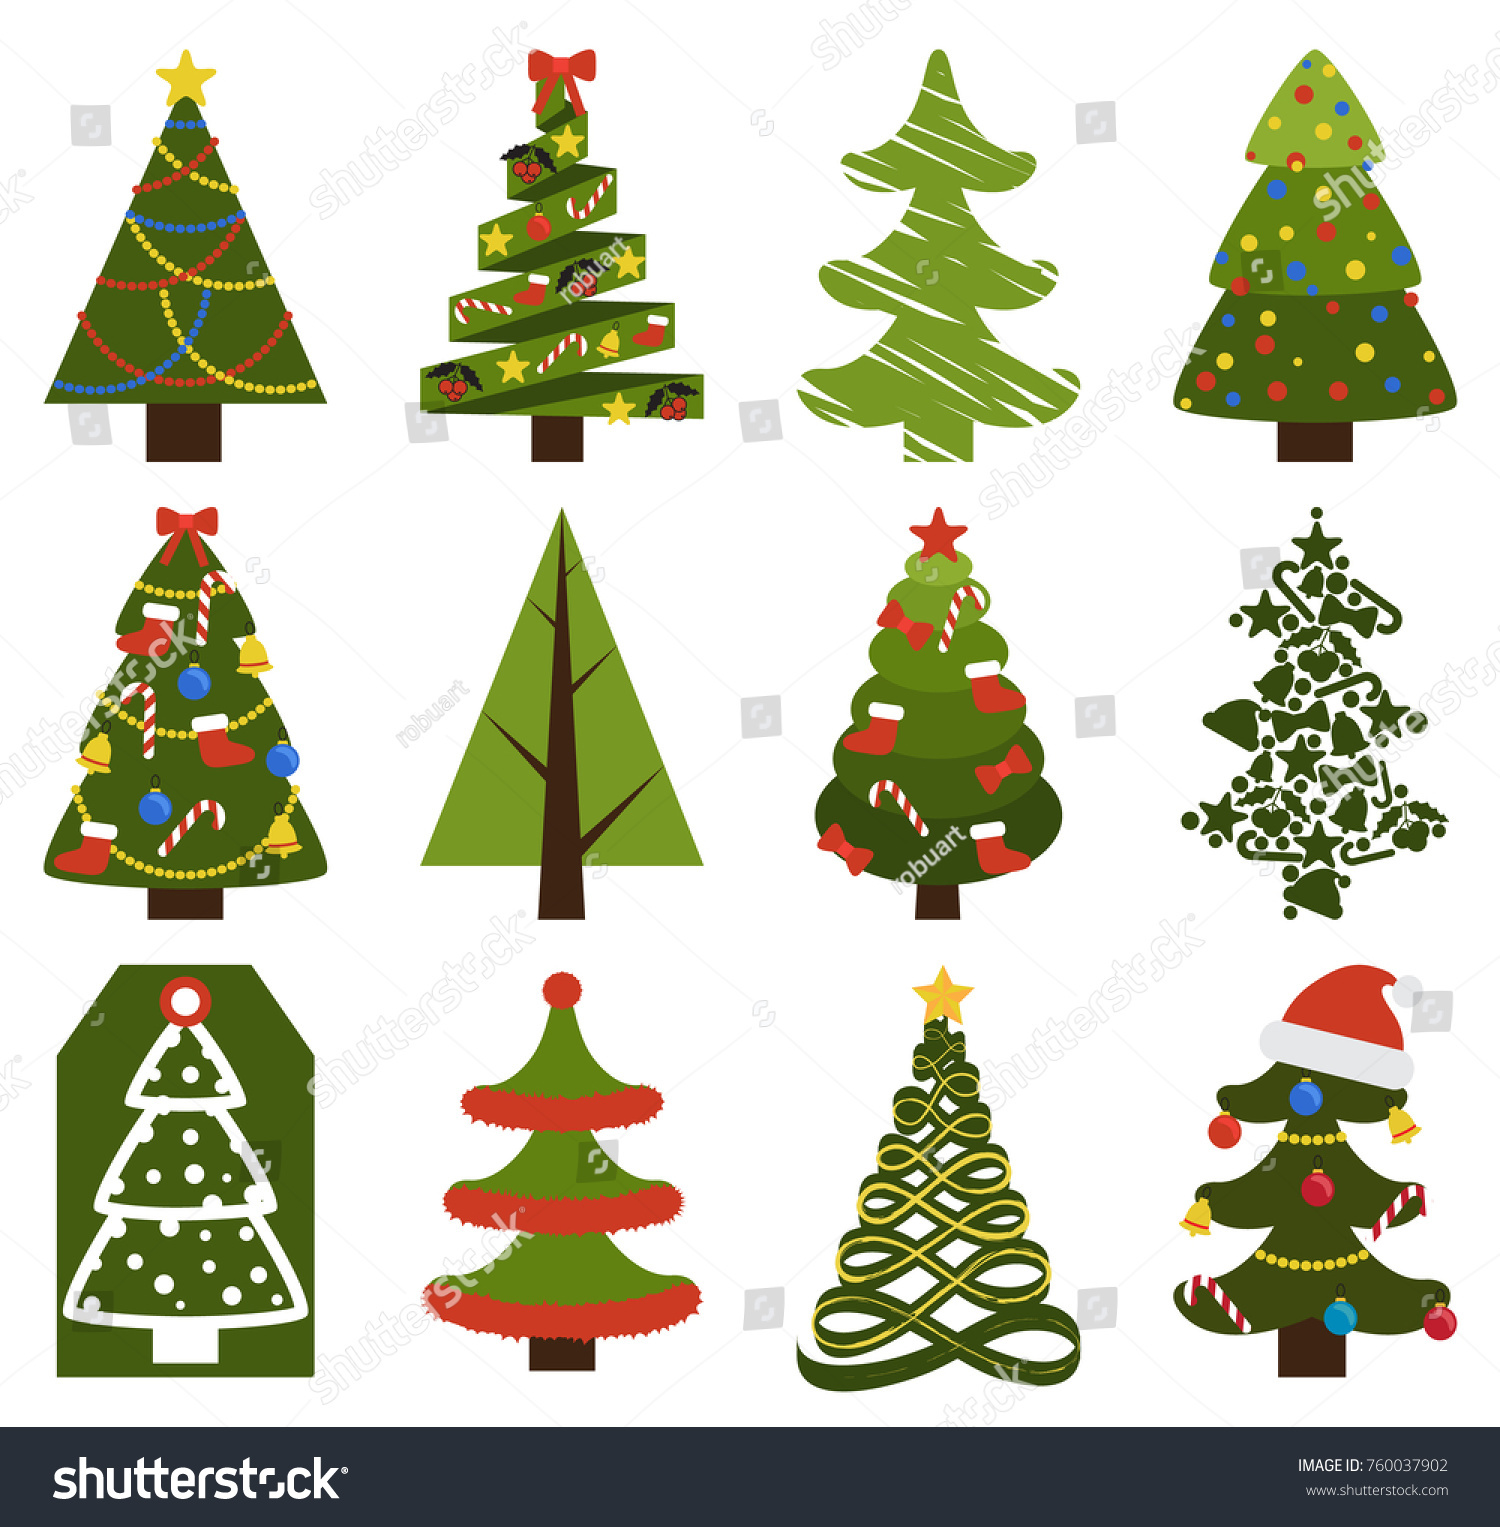 Big set christmas tree symbols without stock vector 760037902 big set of christmas tree symbols with or without decorative elements abstract spruces with garlands biocorpaavc Image collections